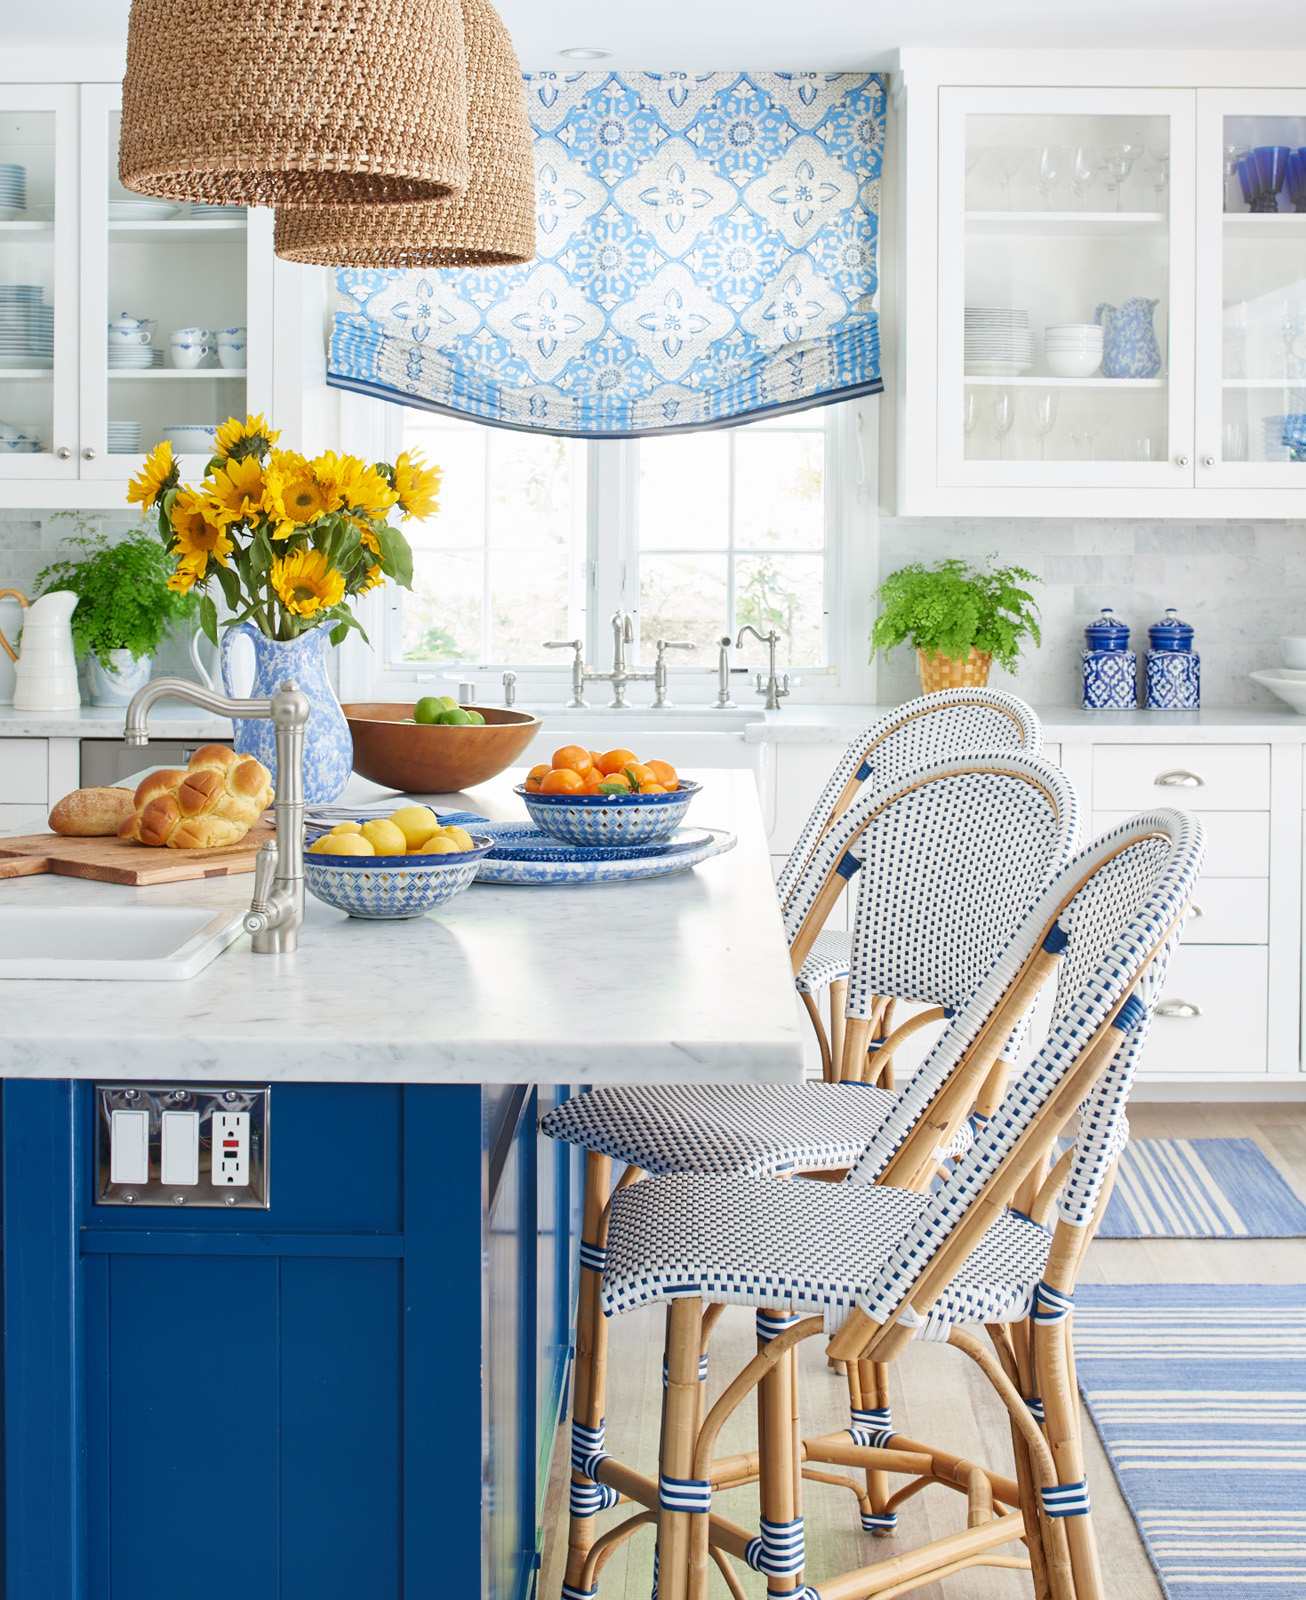 Interior Design Hall And Kitchen: Design Crush: Mark D. Sikes